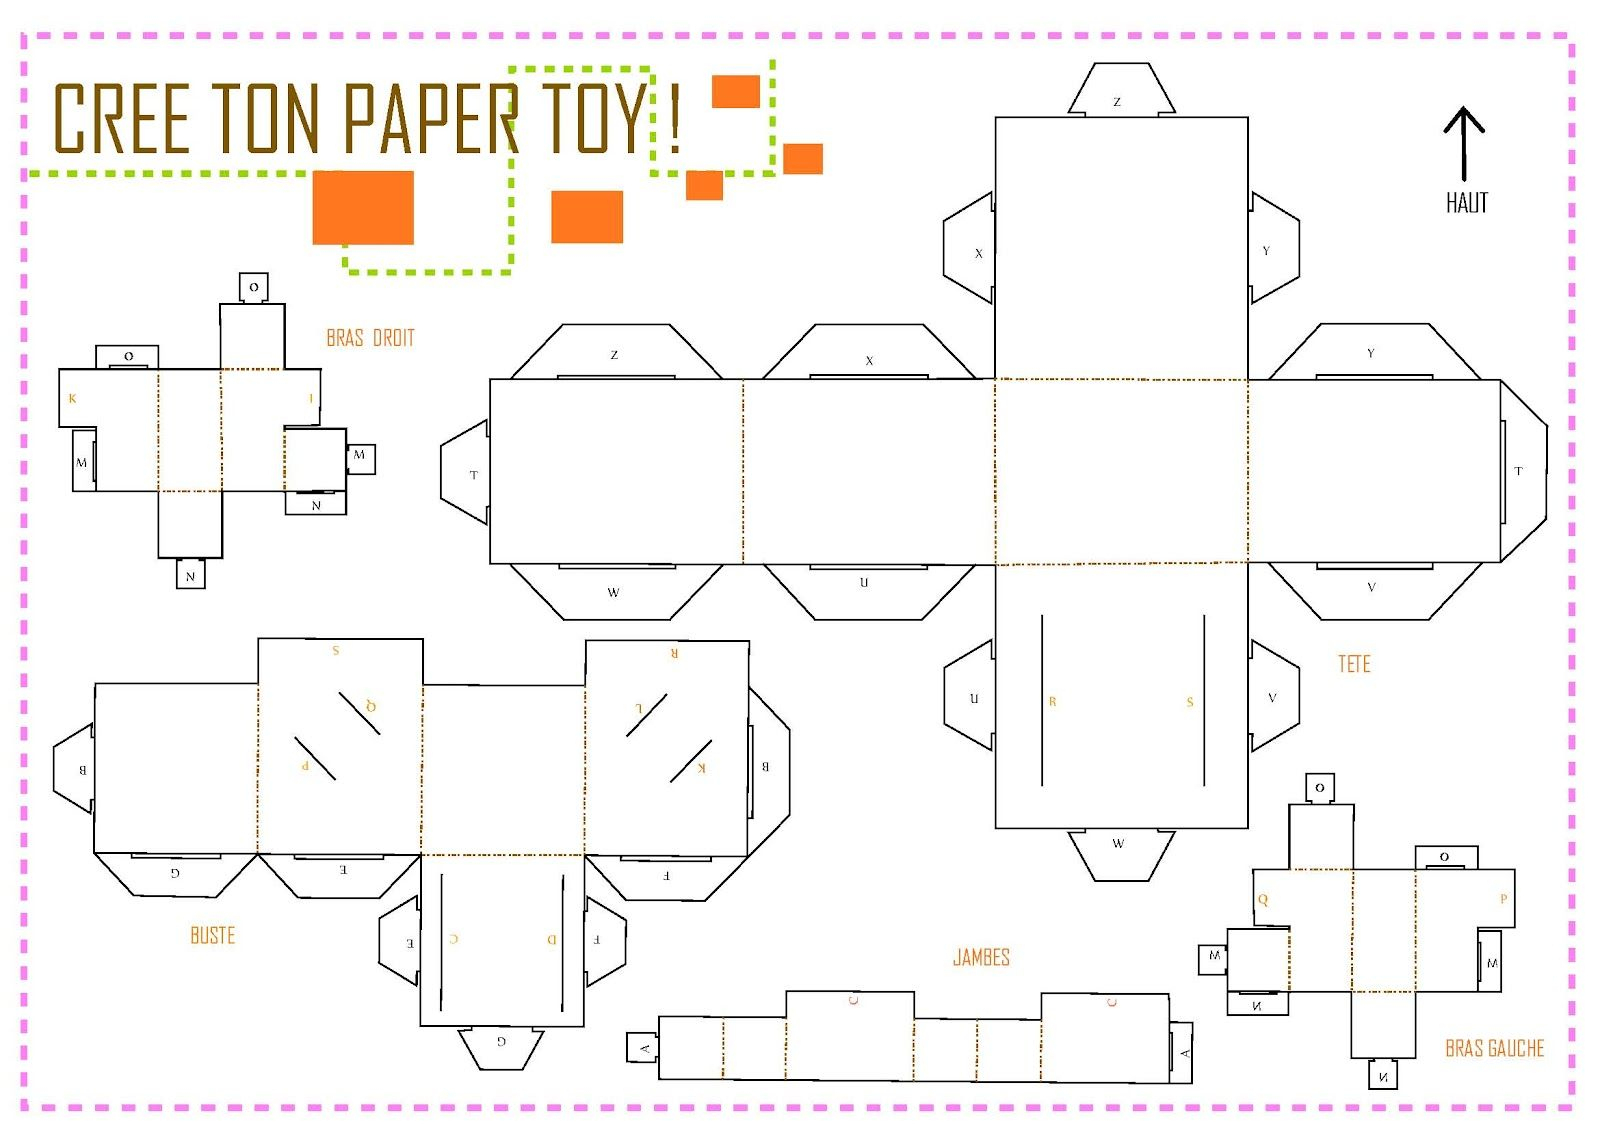 Paper Toys Vierge | Paper Toy, Vierge, Typographie encequiconcerne Paper Toy A Imprimer